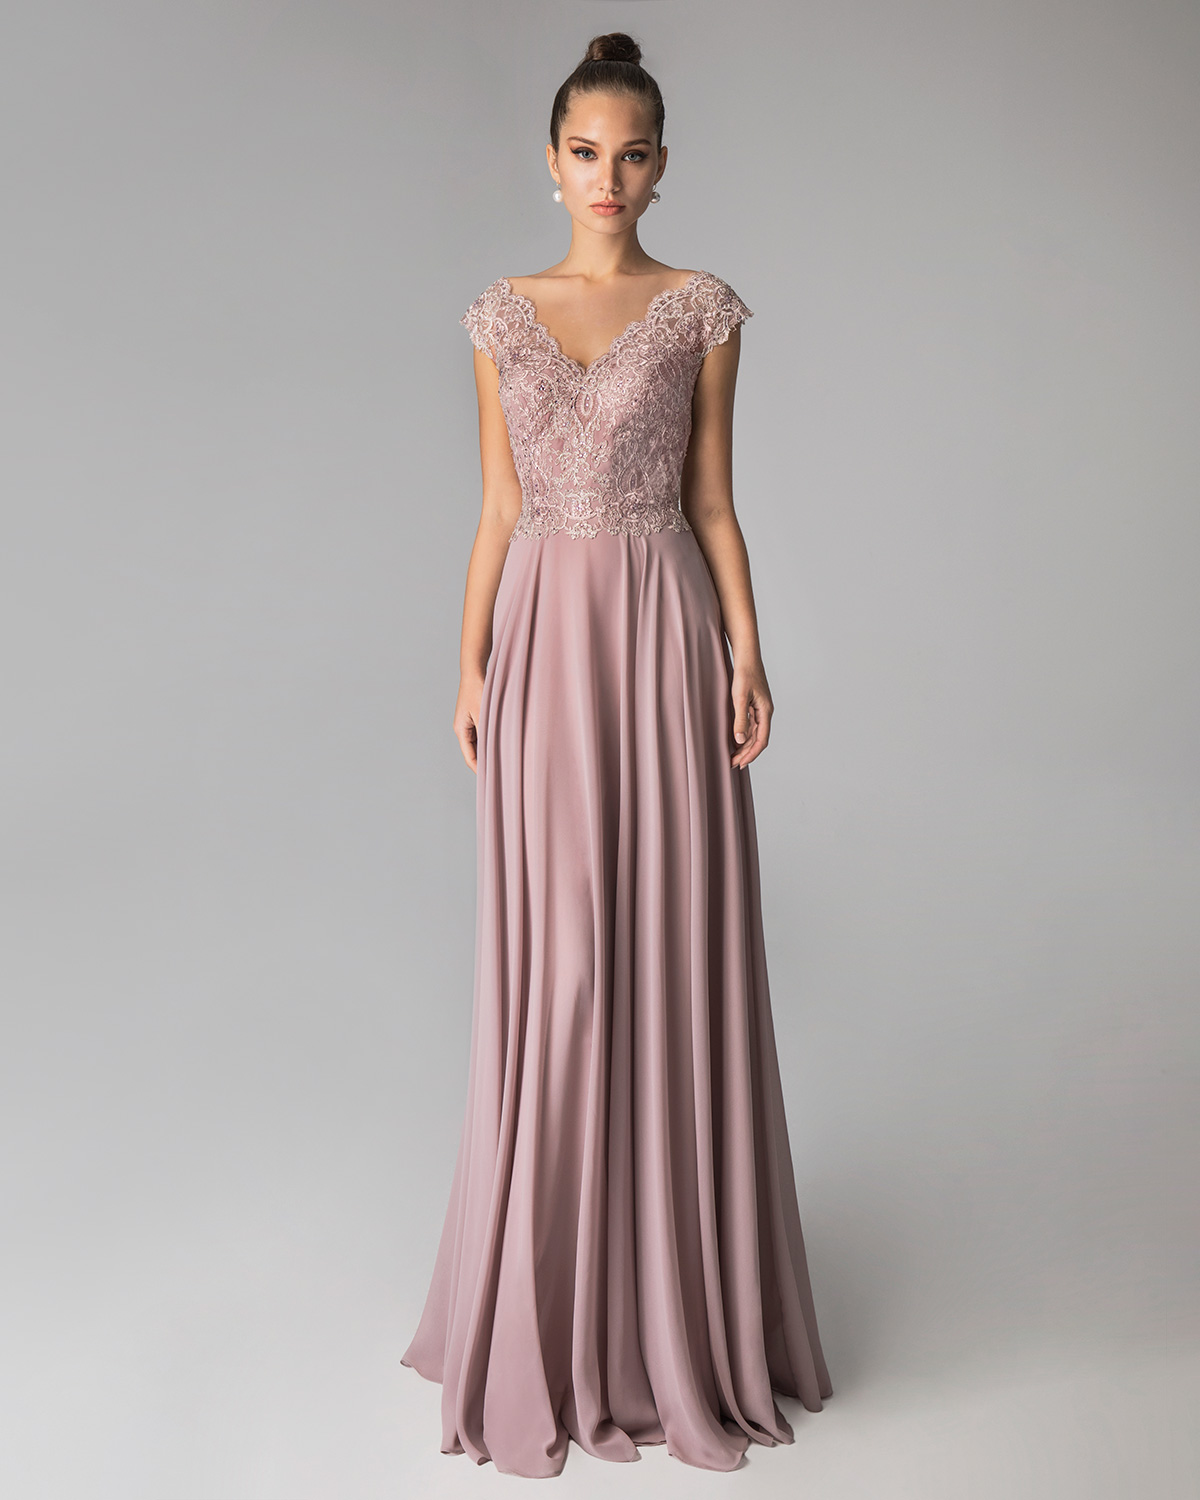 Classic Dresses / Long evening dress with beaded top